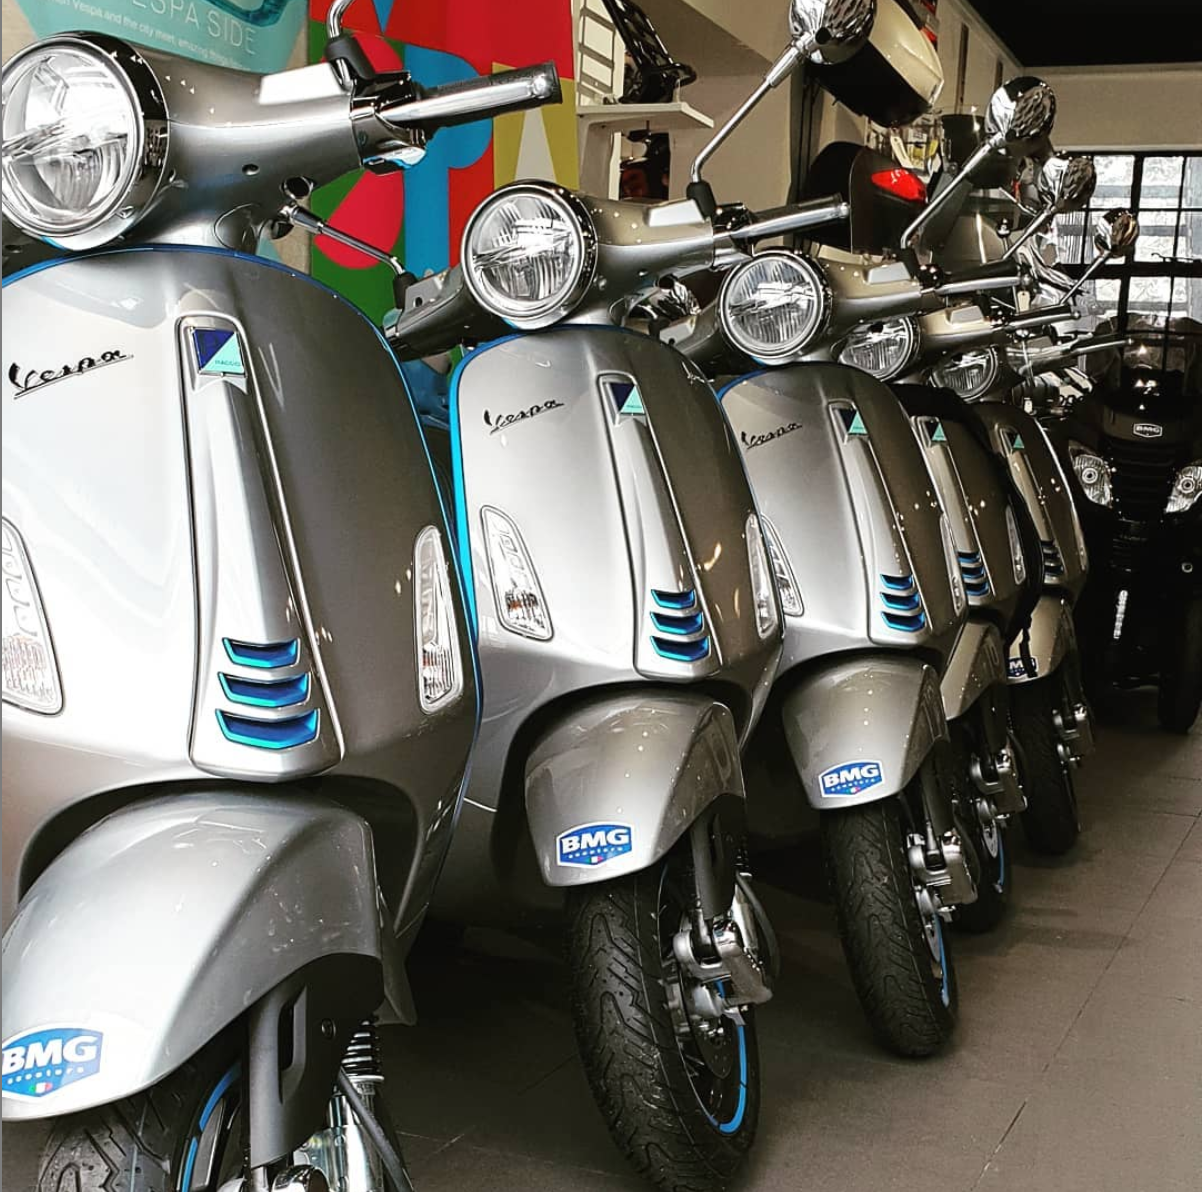 Bmg instagram scooters